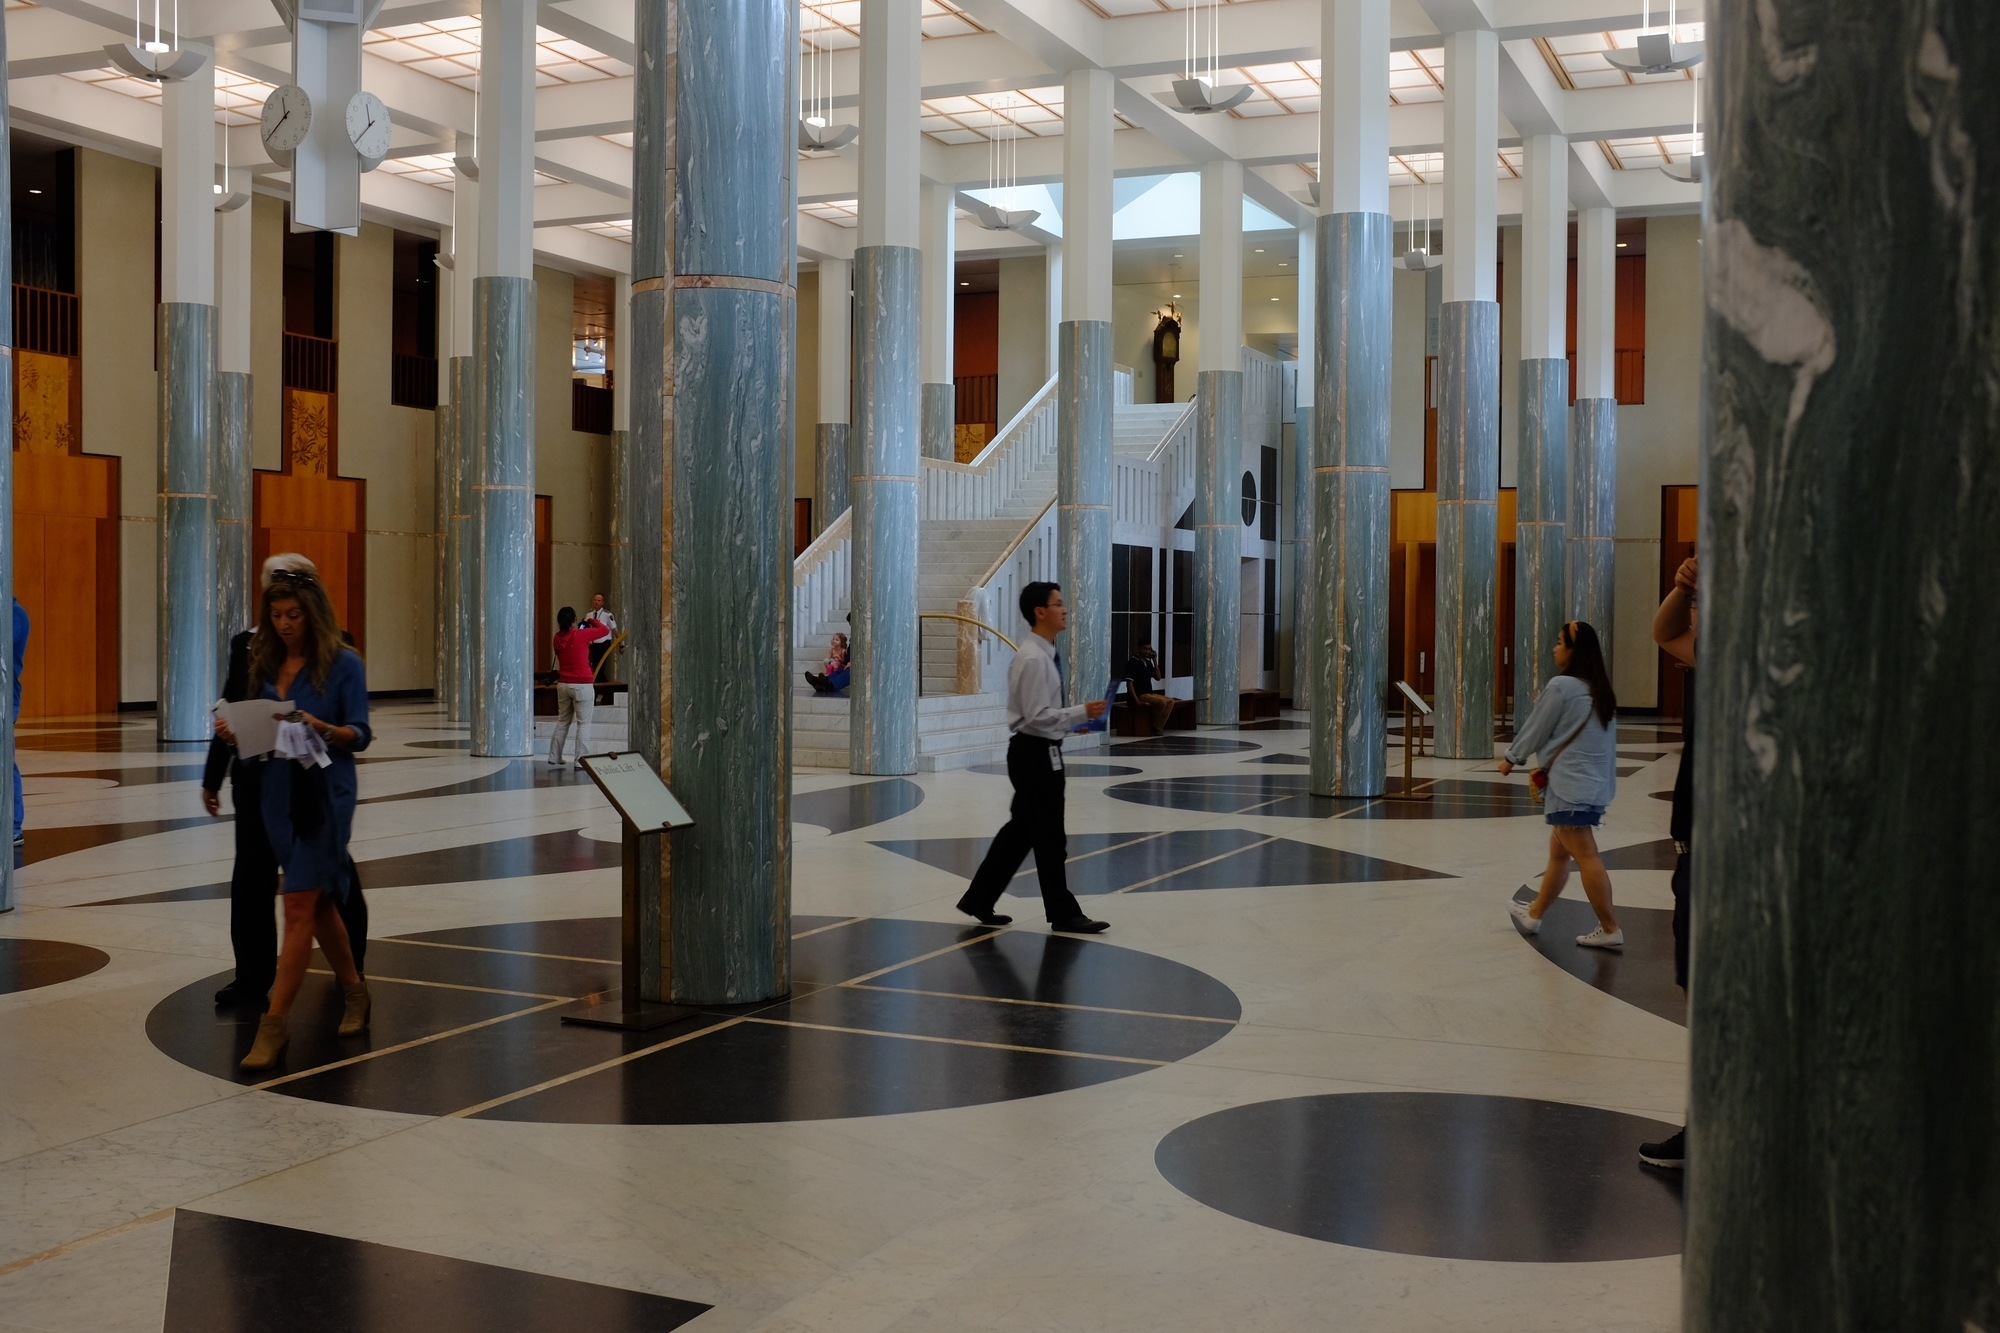 view of the front entrance hall at parliament house